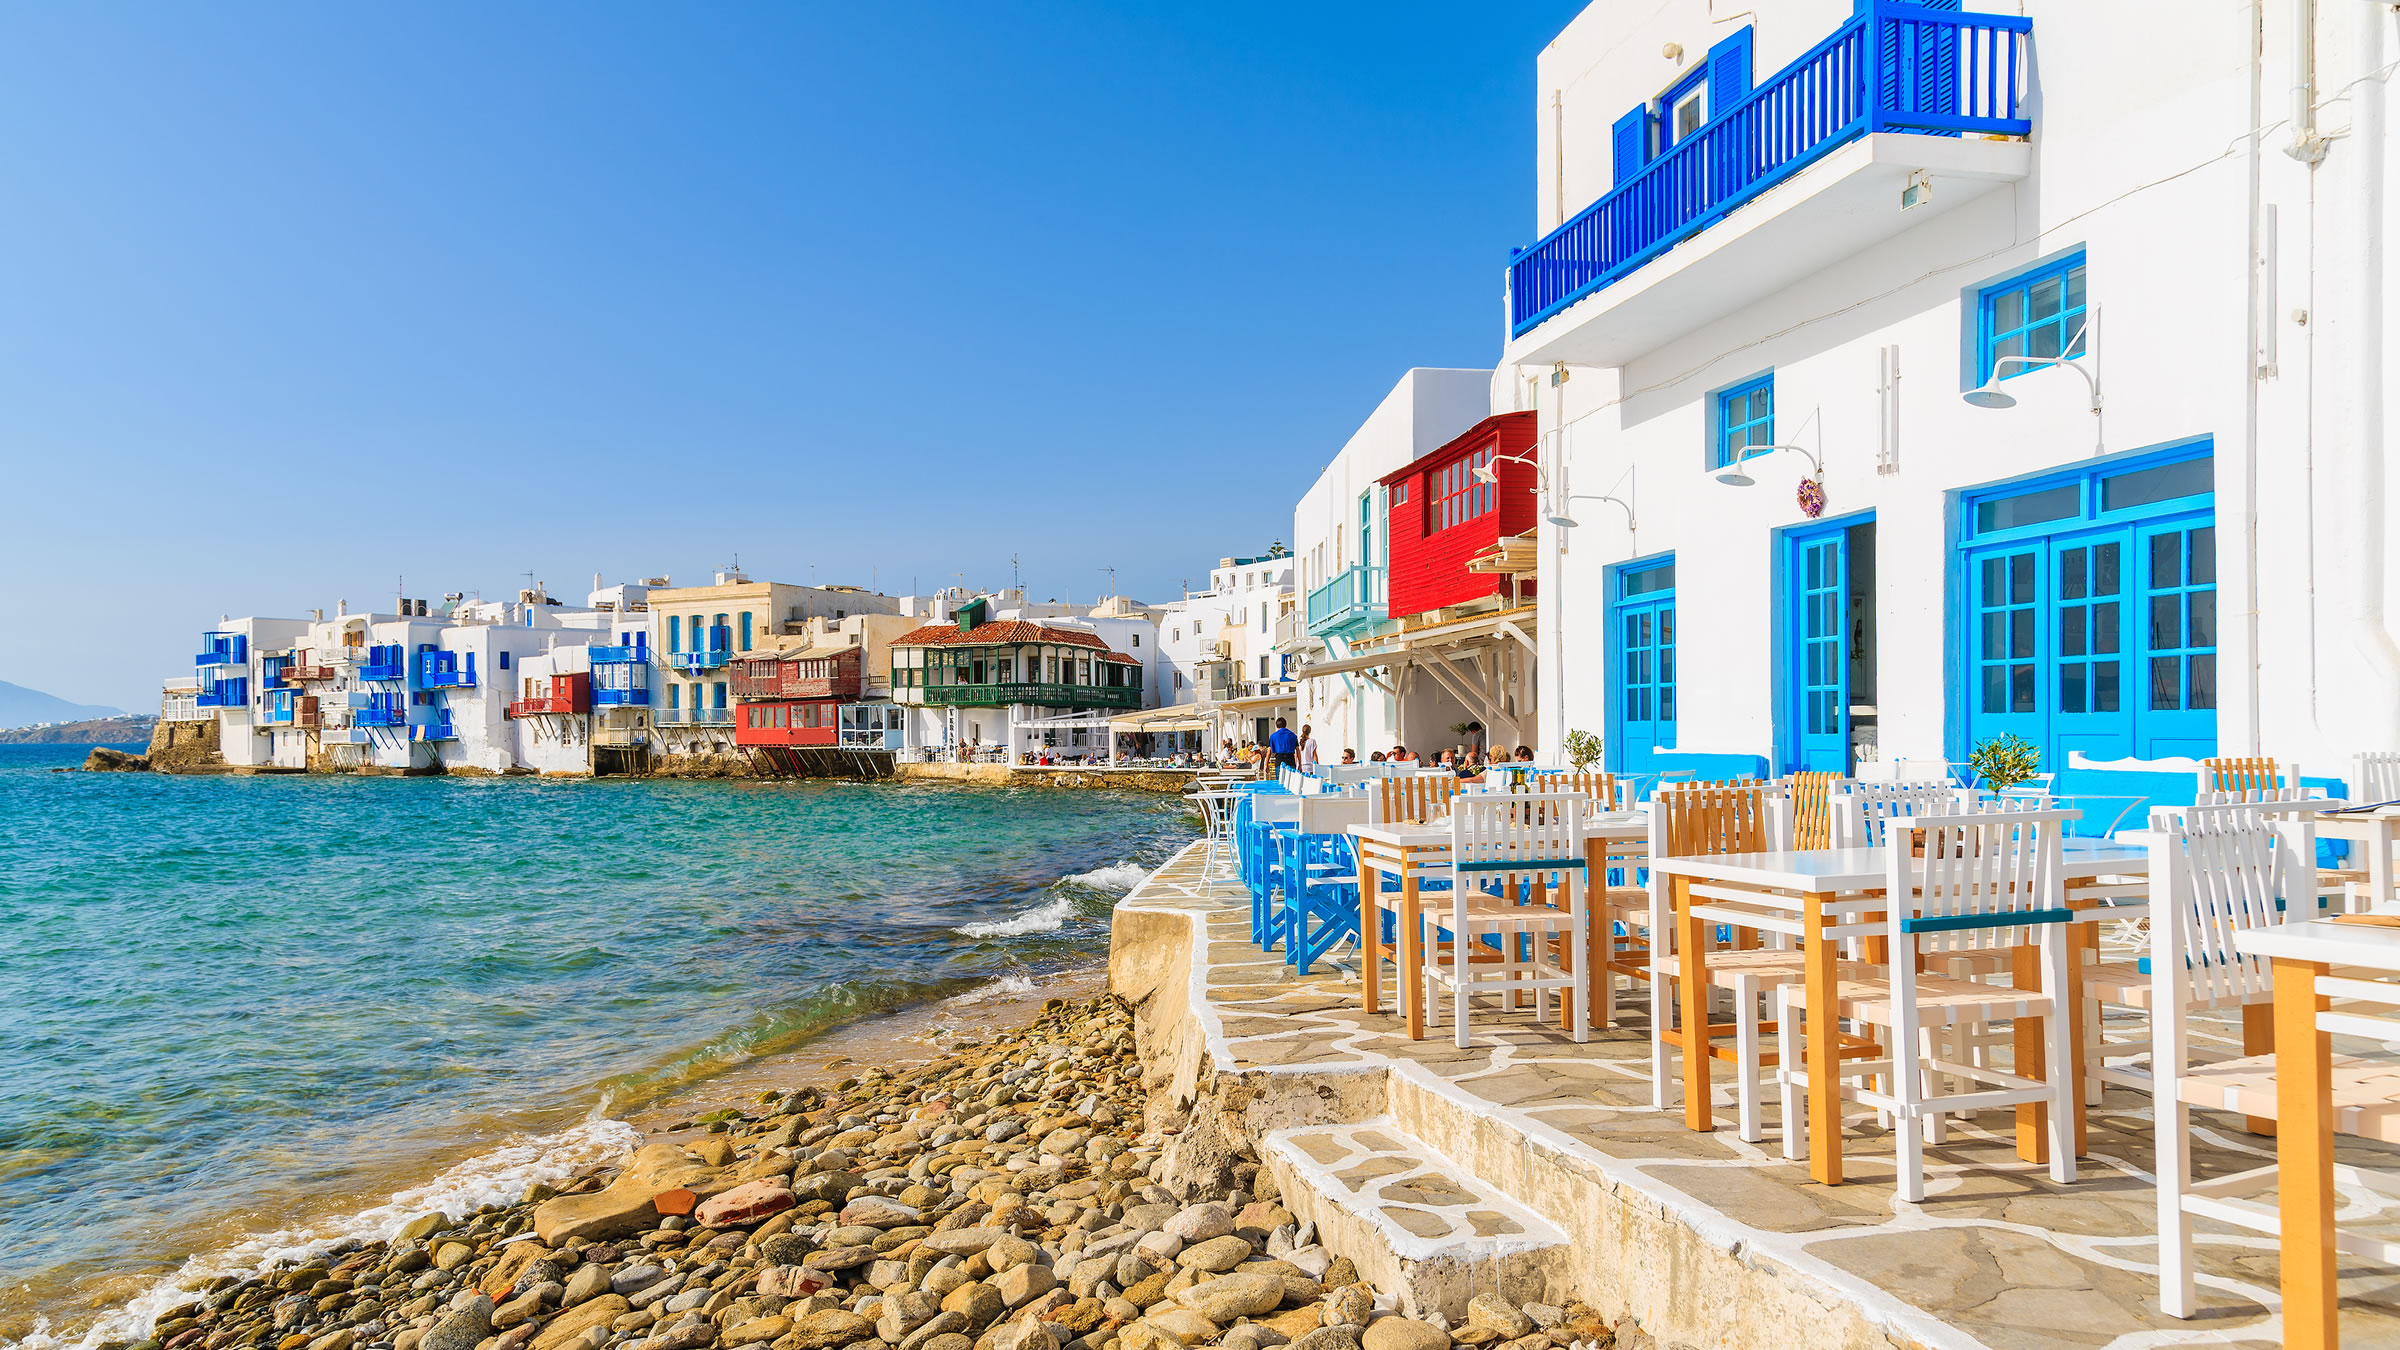 Mykonos Mini Cabin Tour - Blue Cruise,Light Tours Blue Cruise, Blue Cruise, Discount Tours,The Blue Voyage Of Mykonos 312